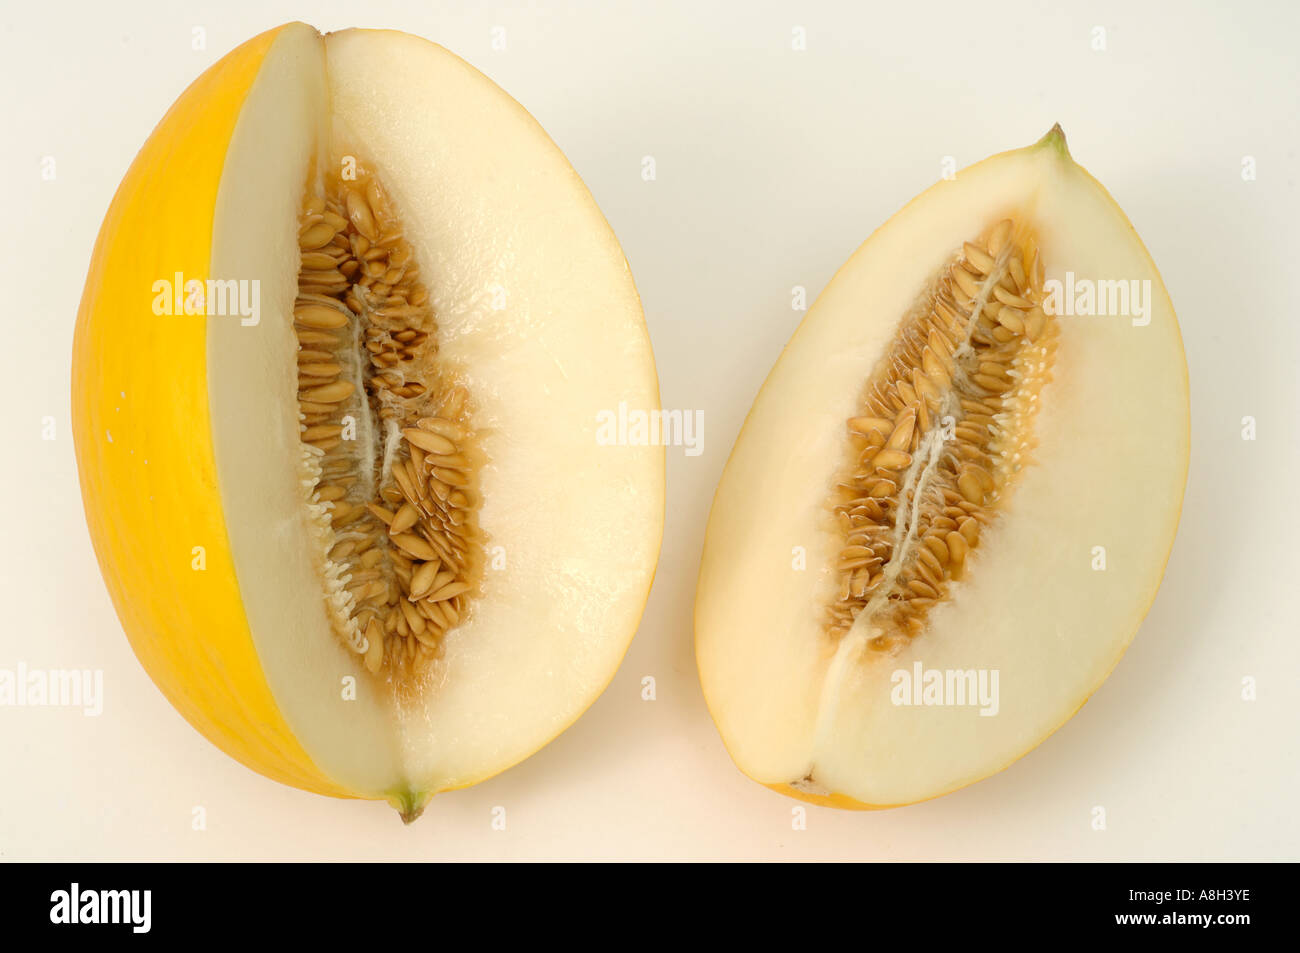 Honeydew melon supermarket bought and in normal shop condition - Stock Image